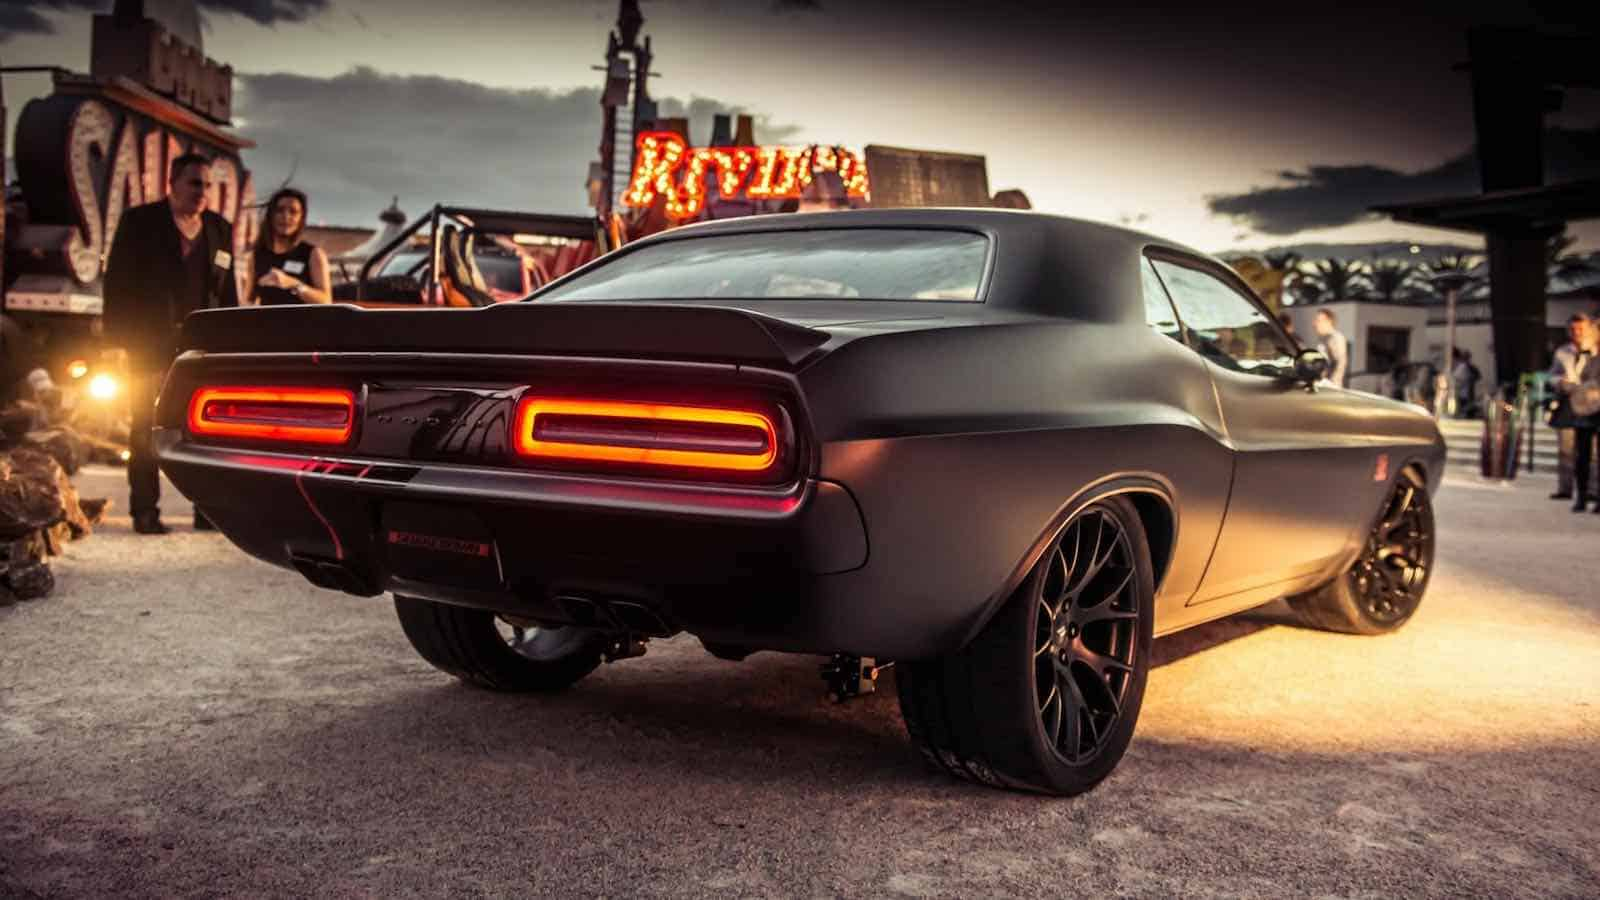 Dodge Shakedown Challenger: Old-school Swag with Modern Muscle